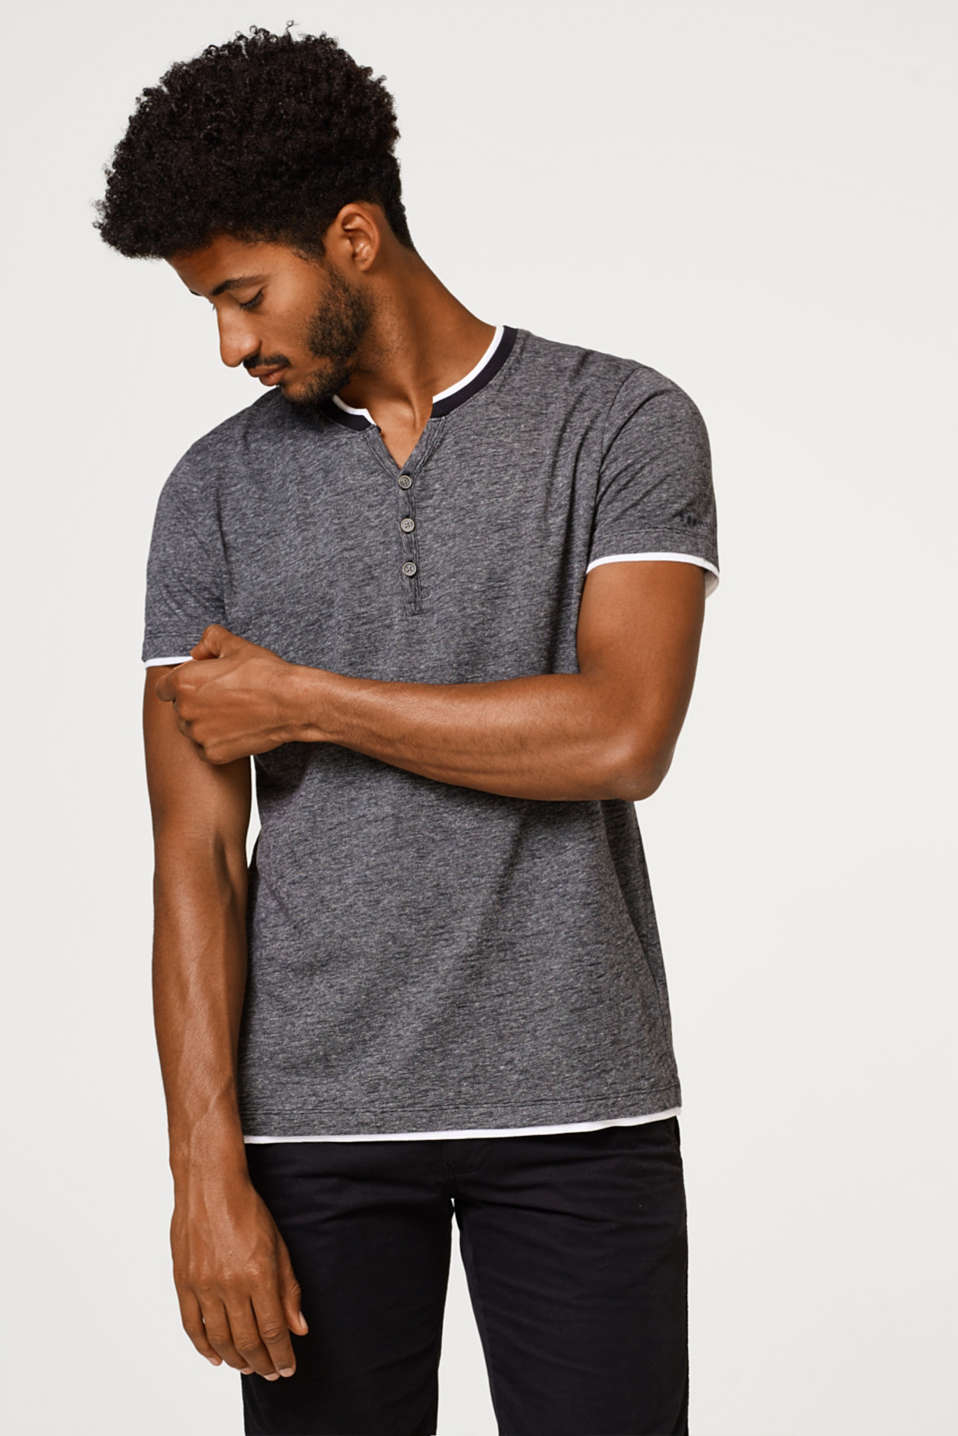 Esprit - Layered jersey T-shirt, organic cotton